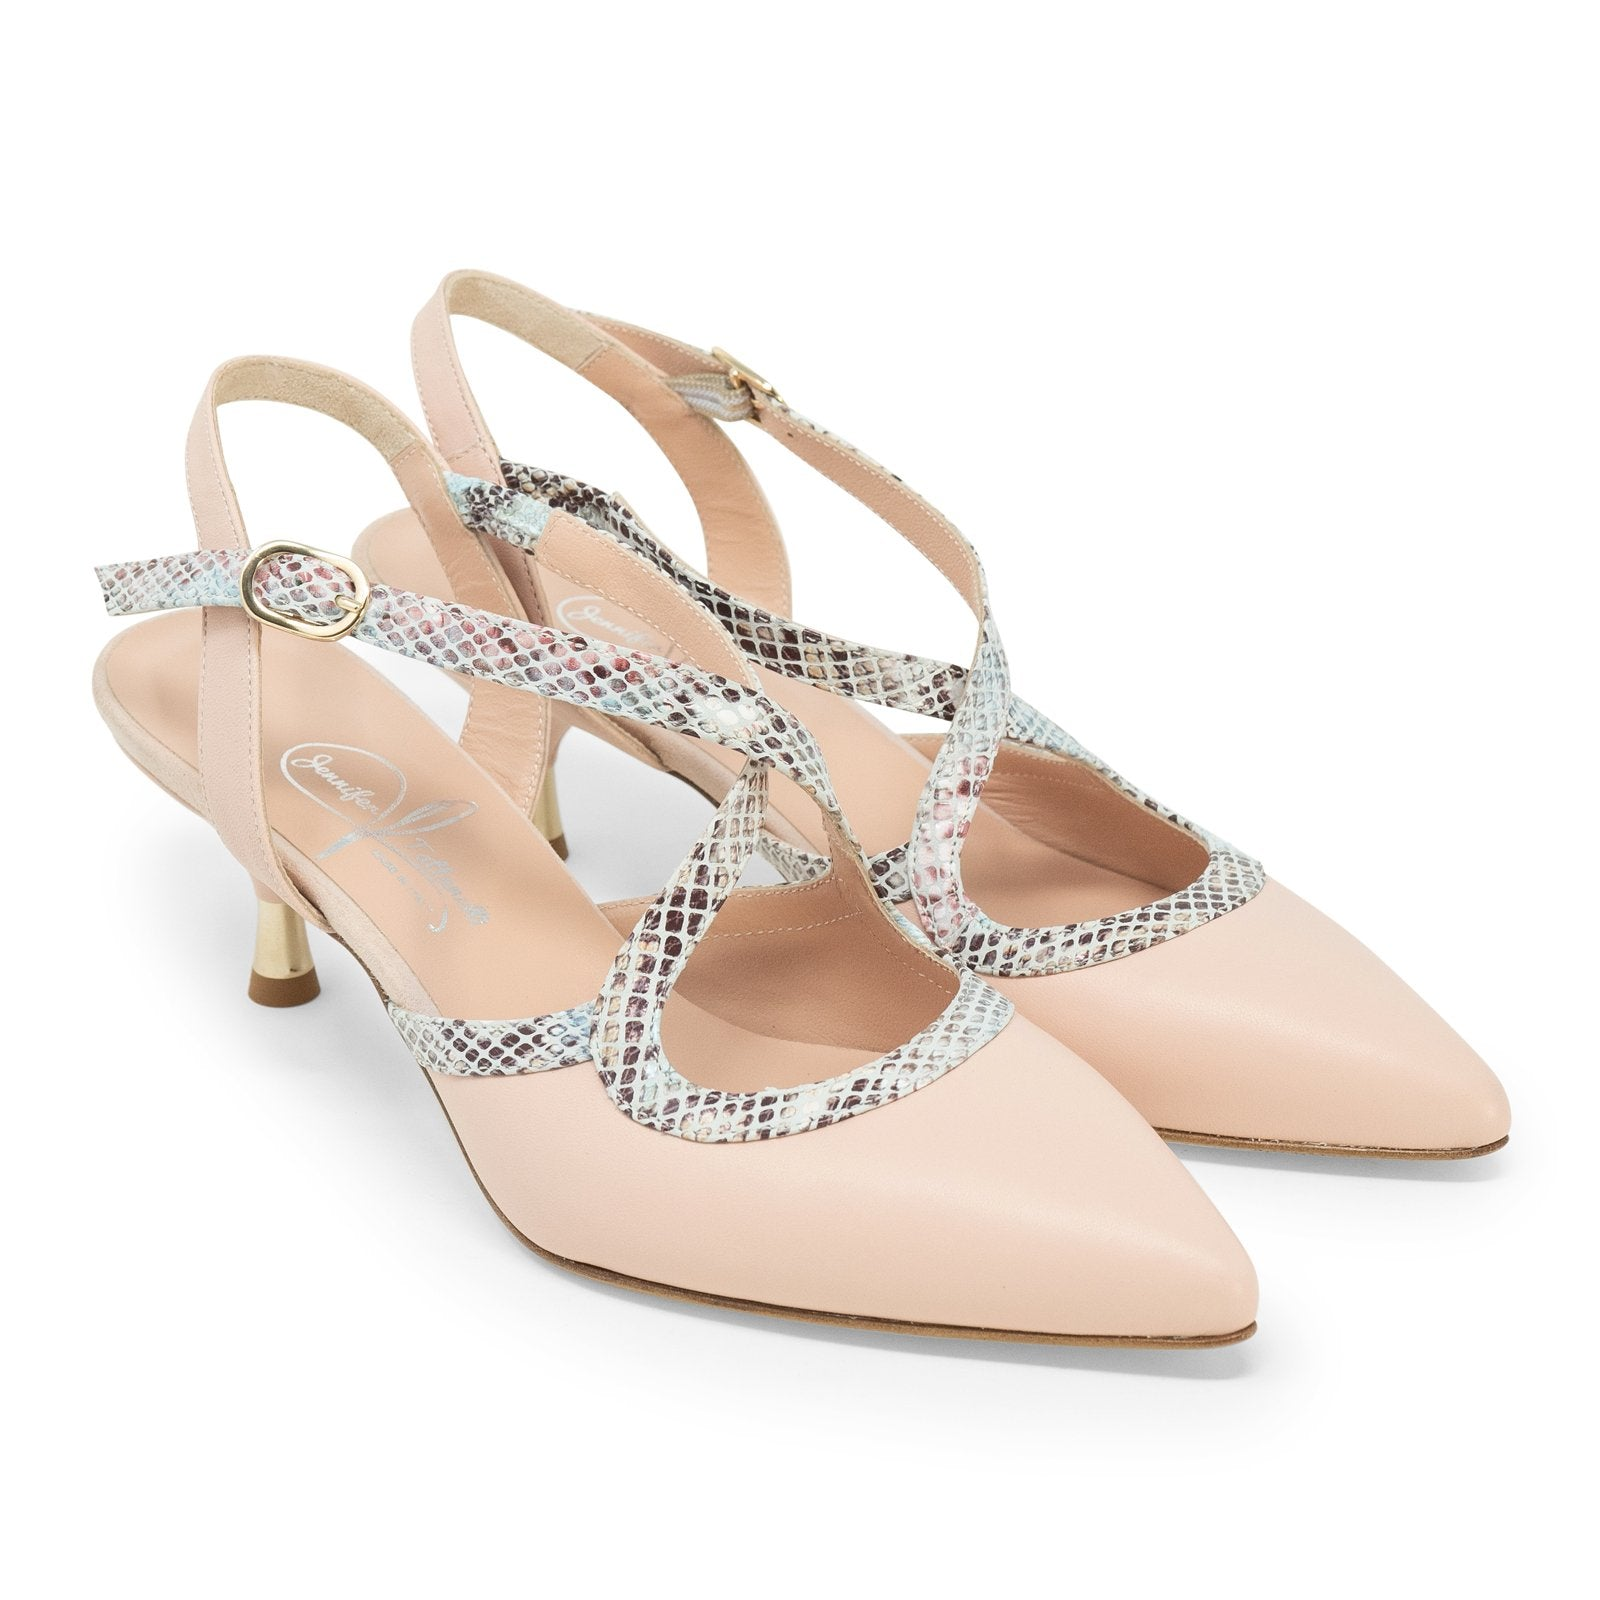 Women's Pointed-Toe Snake Backsling Pumps in Nude